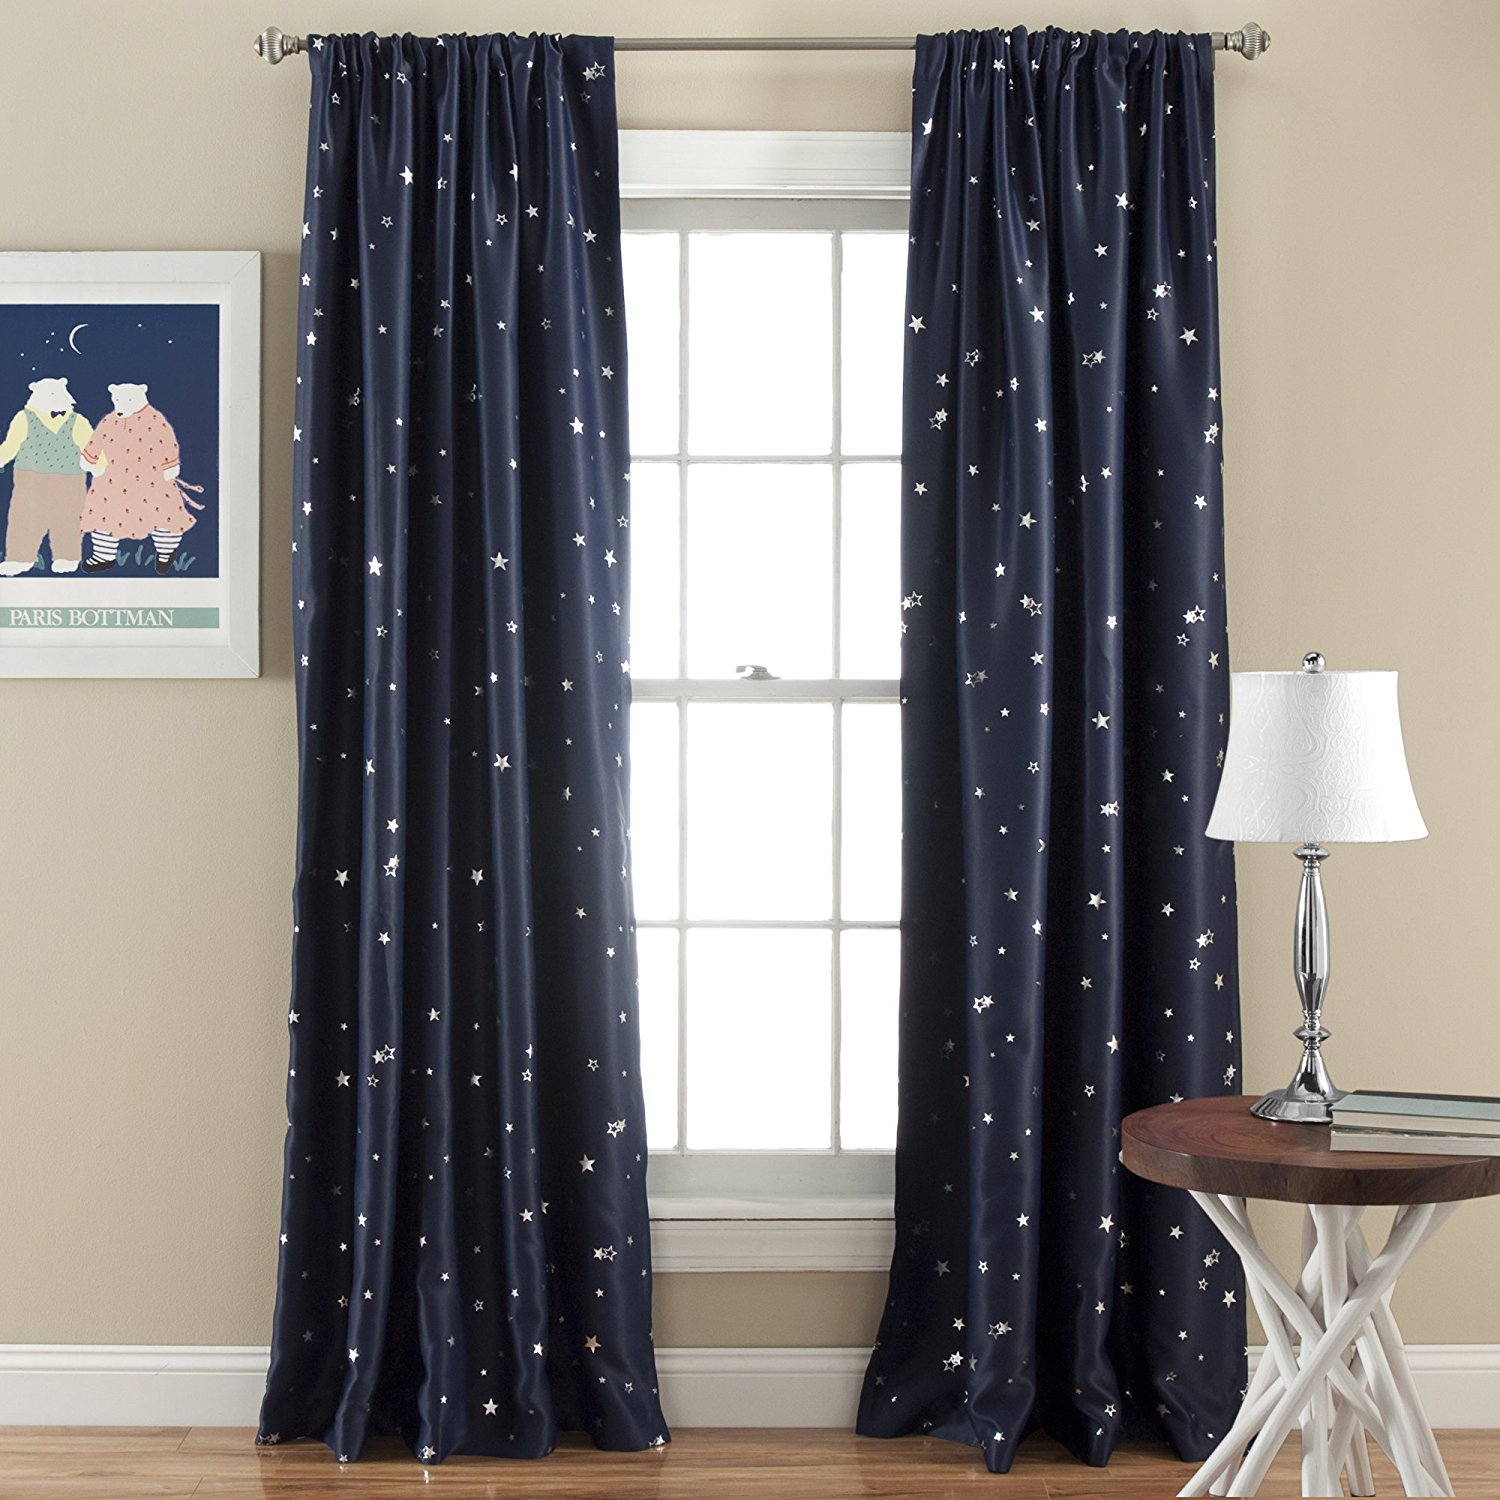 Paris Curtains For Bedroom Online Get Cheap Modern Window Curtains Aliexpresscom Alibaba